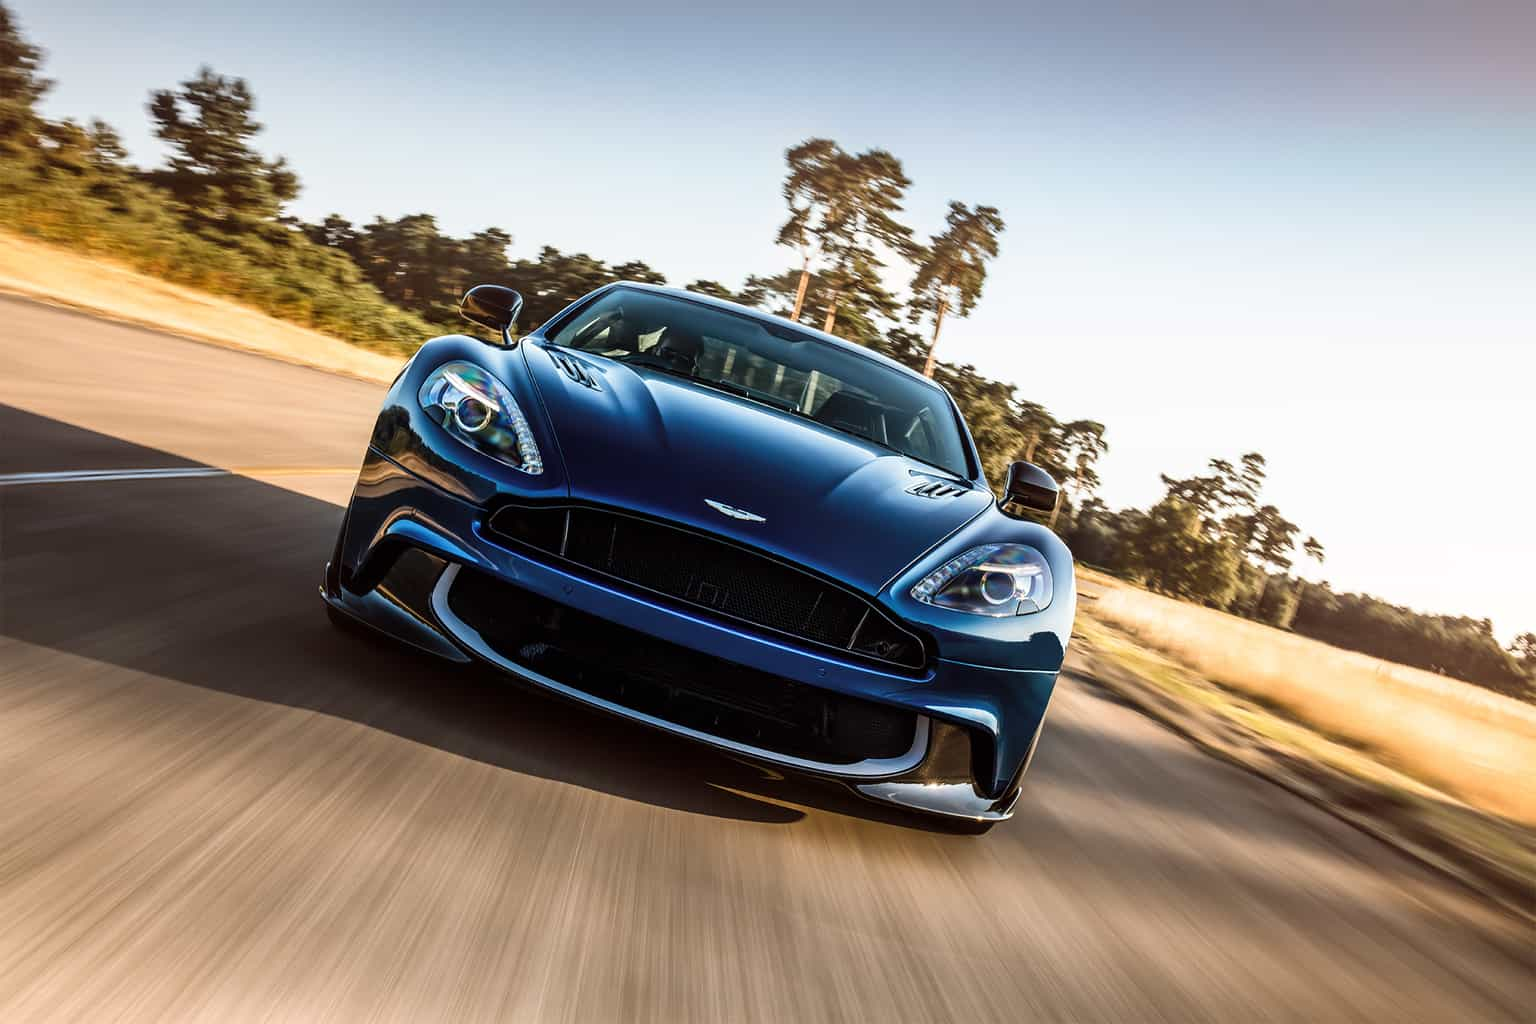 2018-Aston-Martin-Vanquish-S-front-view-in-motion